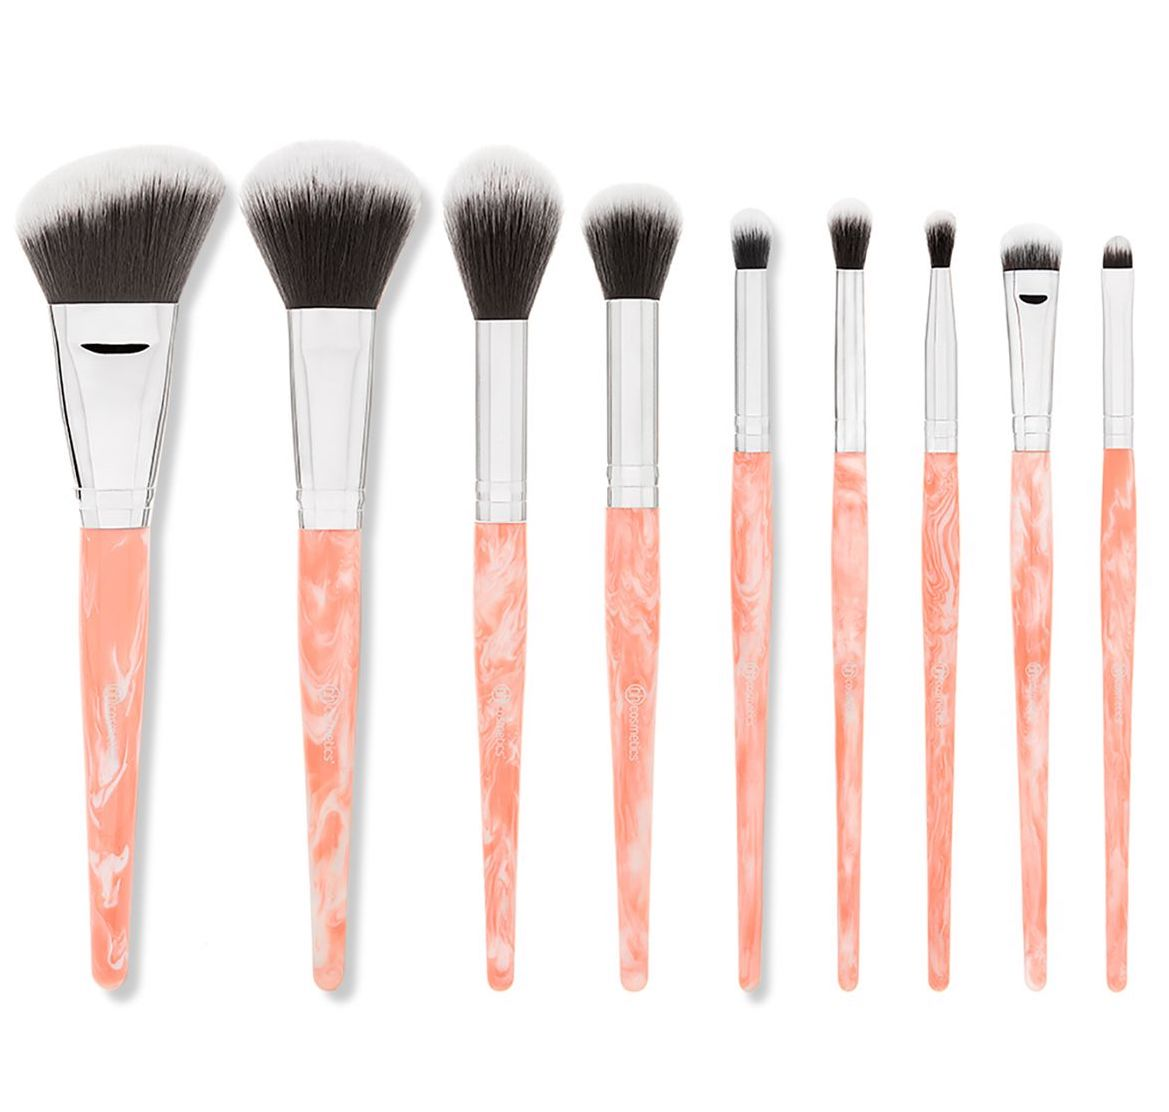 Rose Quartz Makeup Brush Set - @BHcosmetics $13